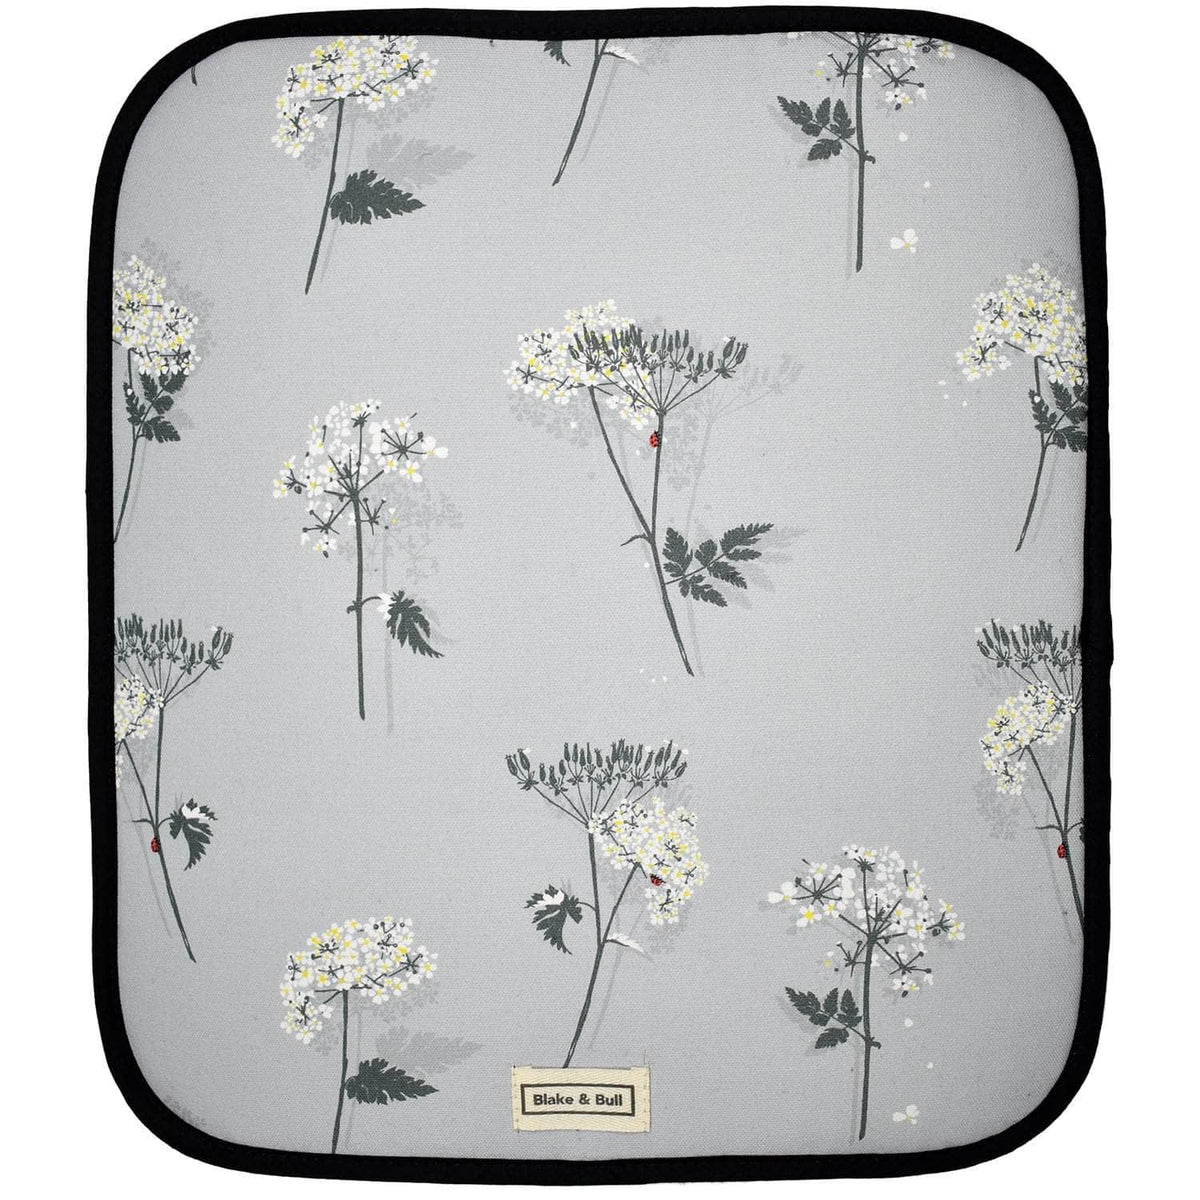 Warming plate cover for use with Aga range cookers - 'Cow Parsley'